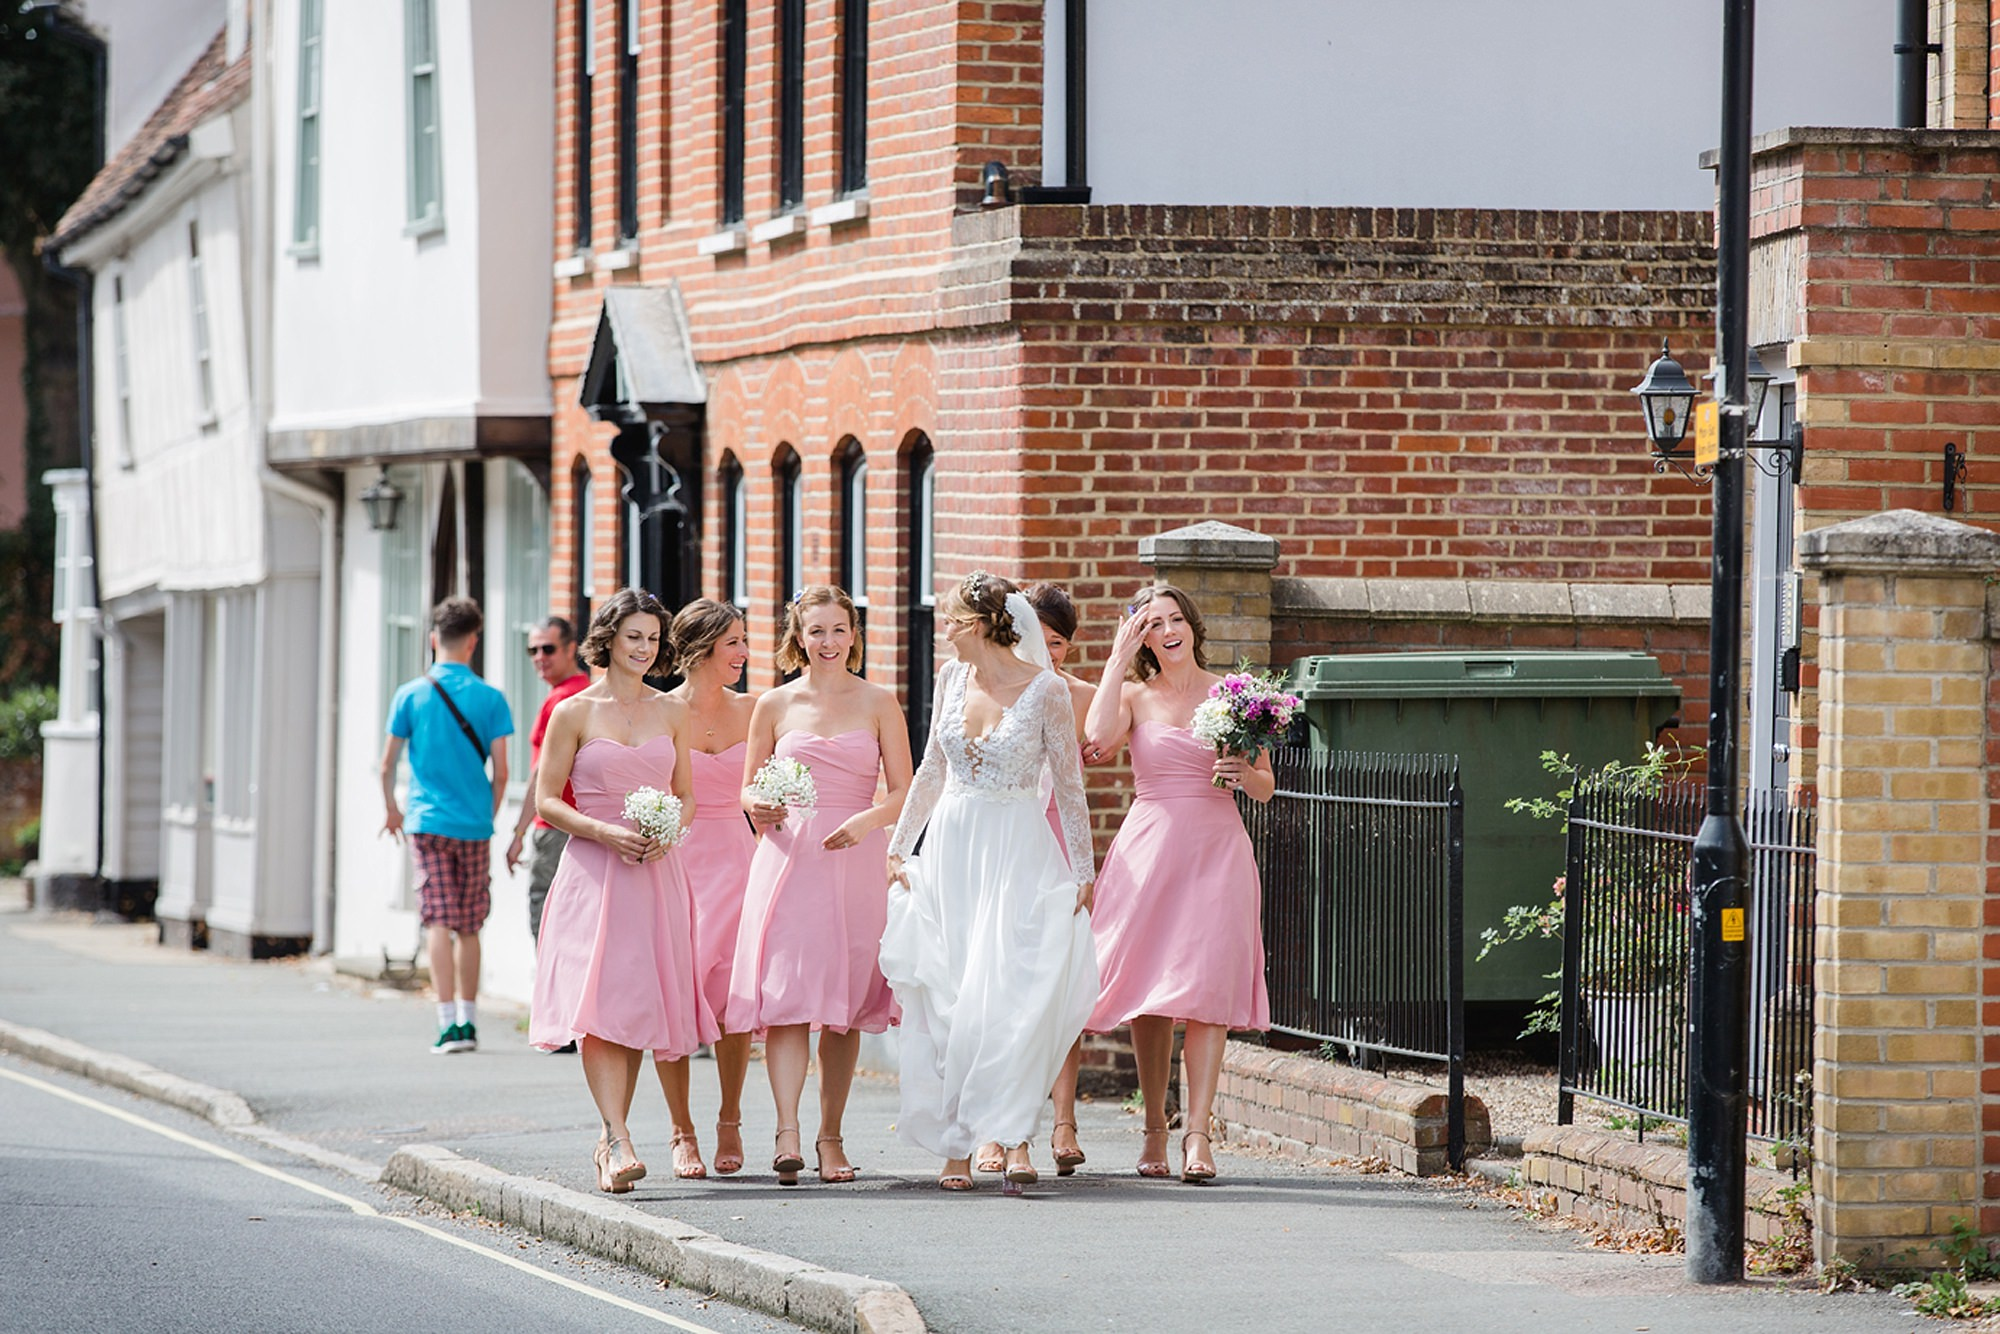 Marks Hall Estate wedding photography bride and bridesmaids walking